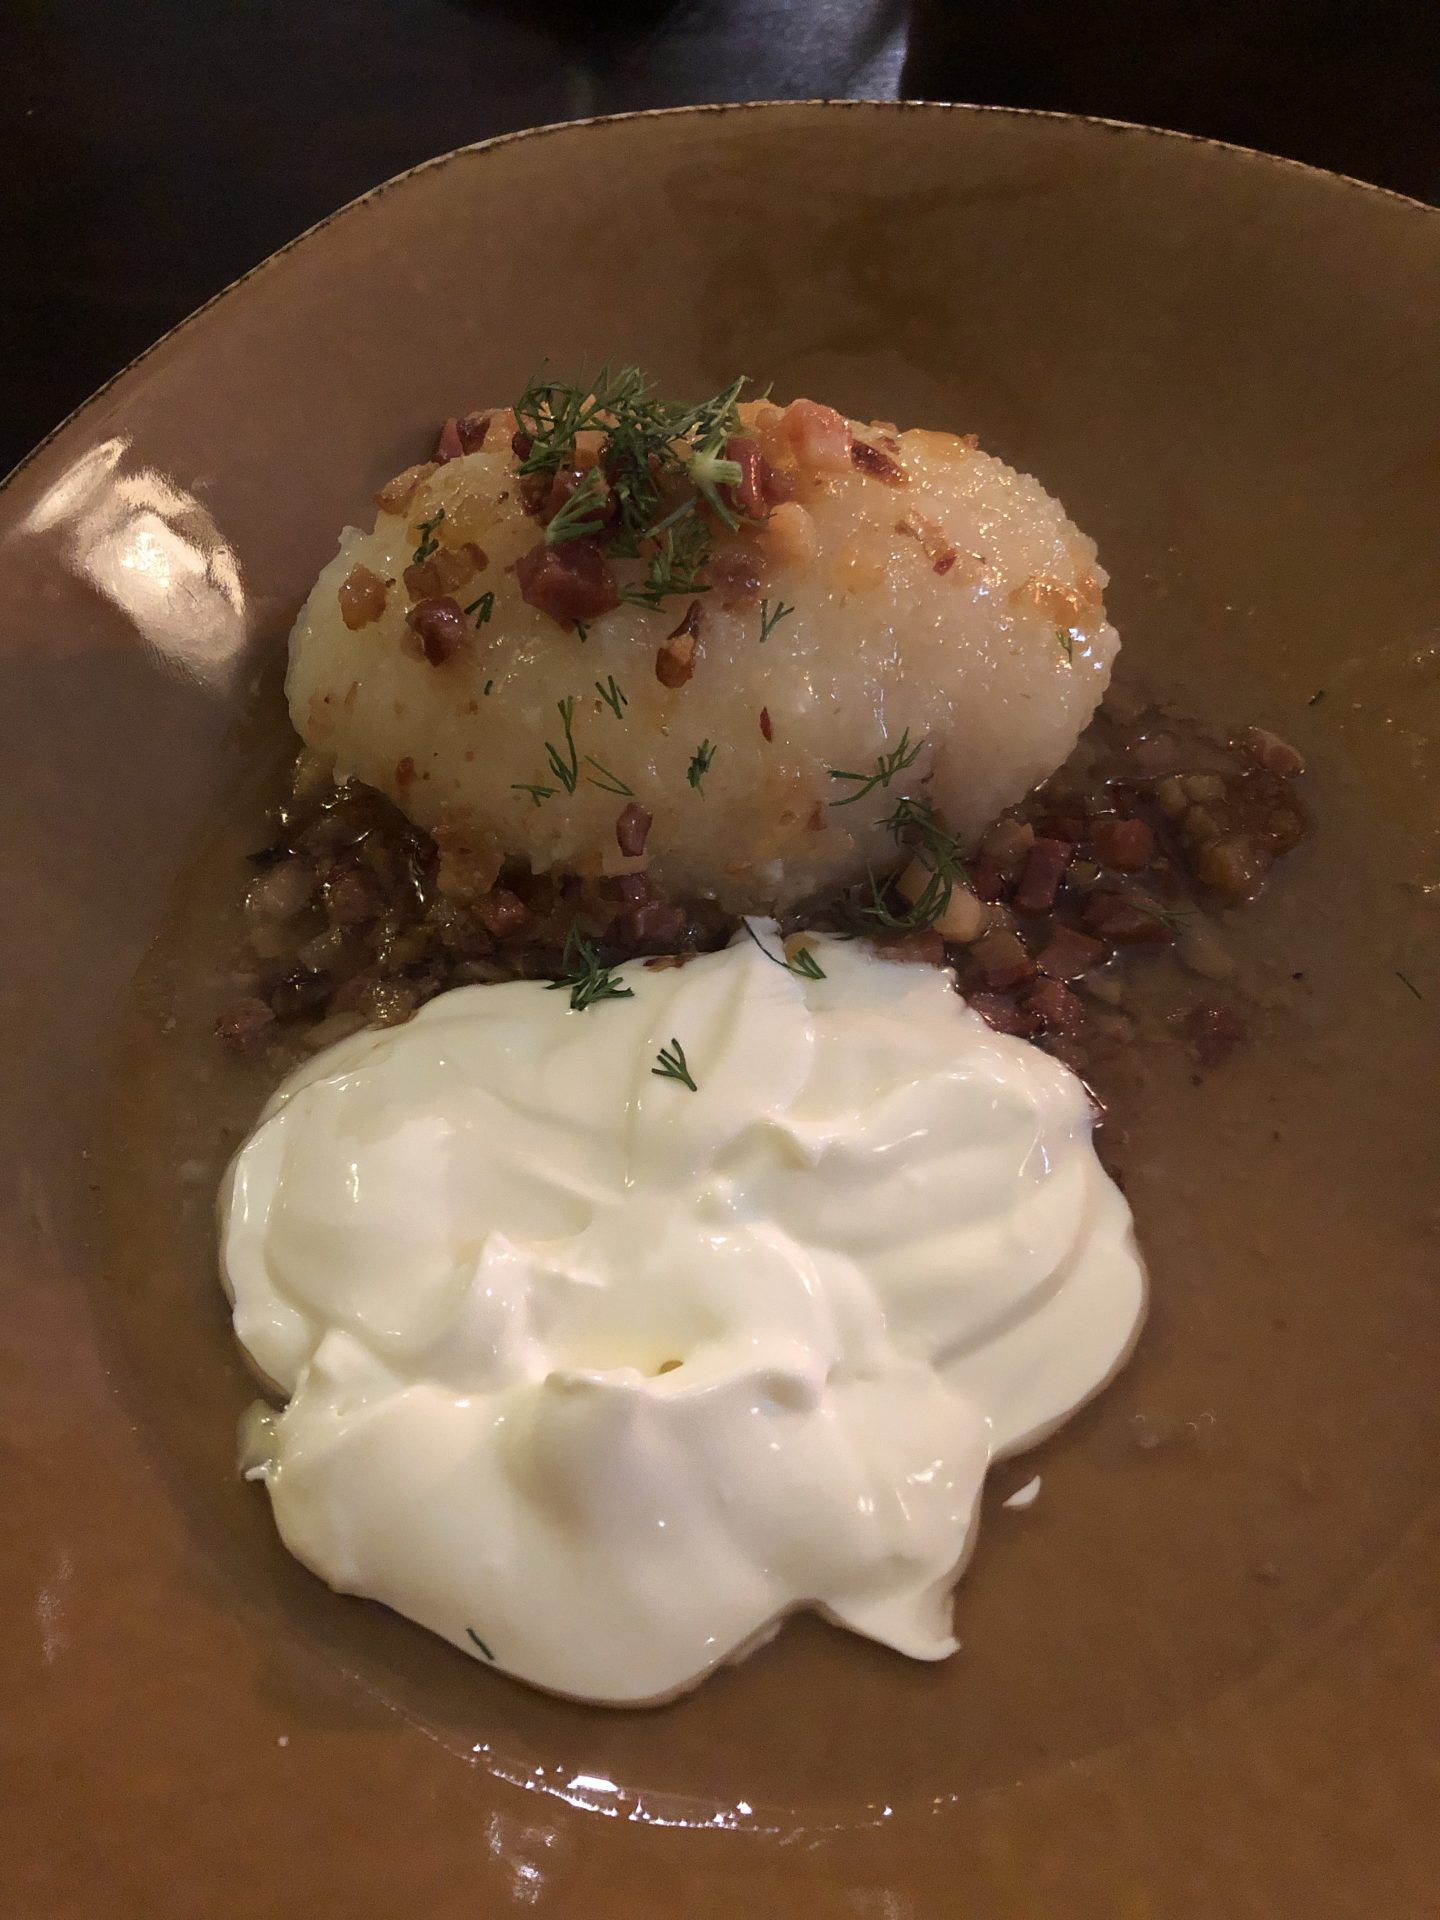 best restaurants: Cepelinai eaten in Vilnius. Image shows a large dumpling glistening with fat and covered in bacon lardons, with a side of soured cream.